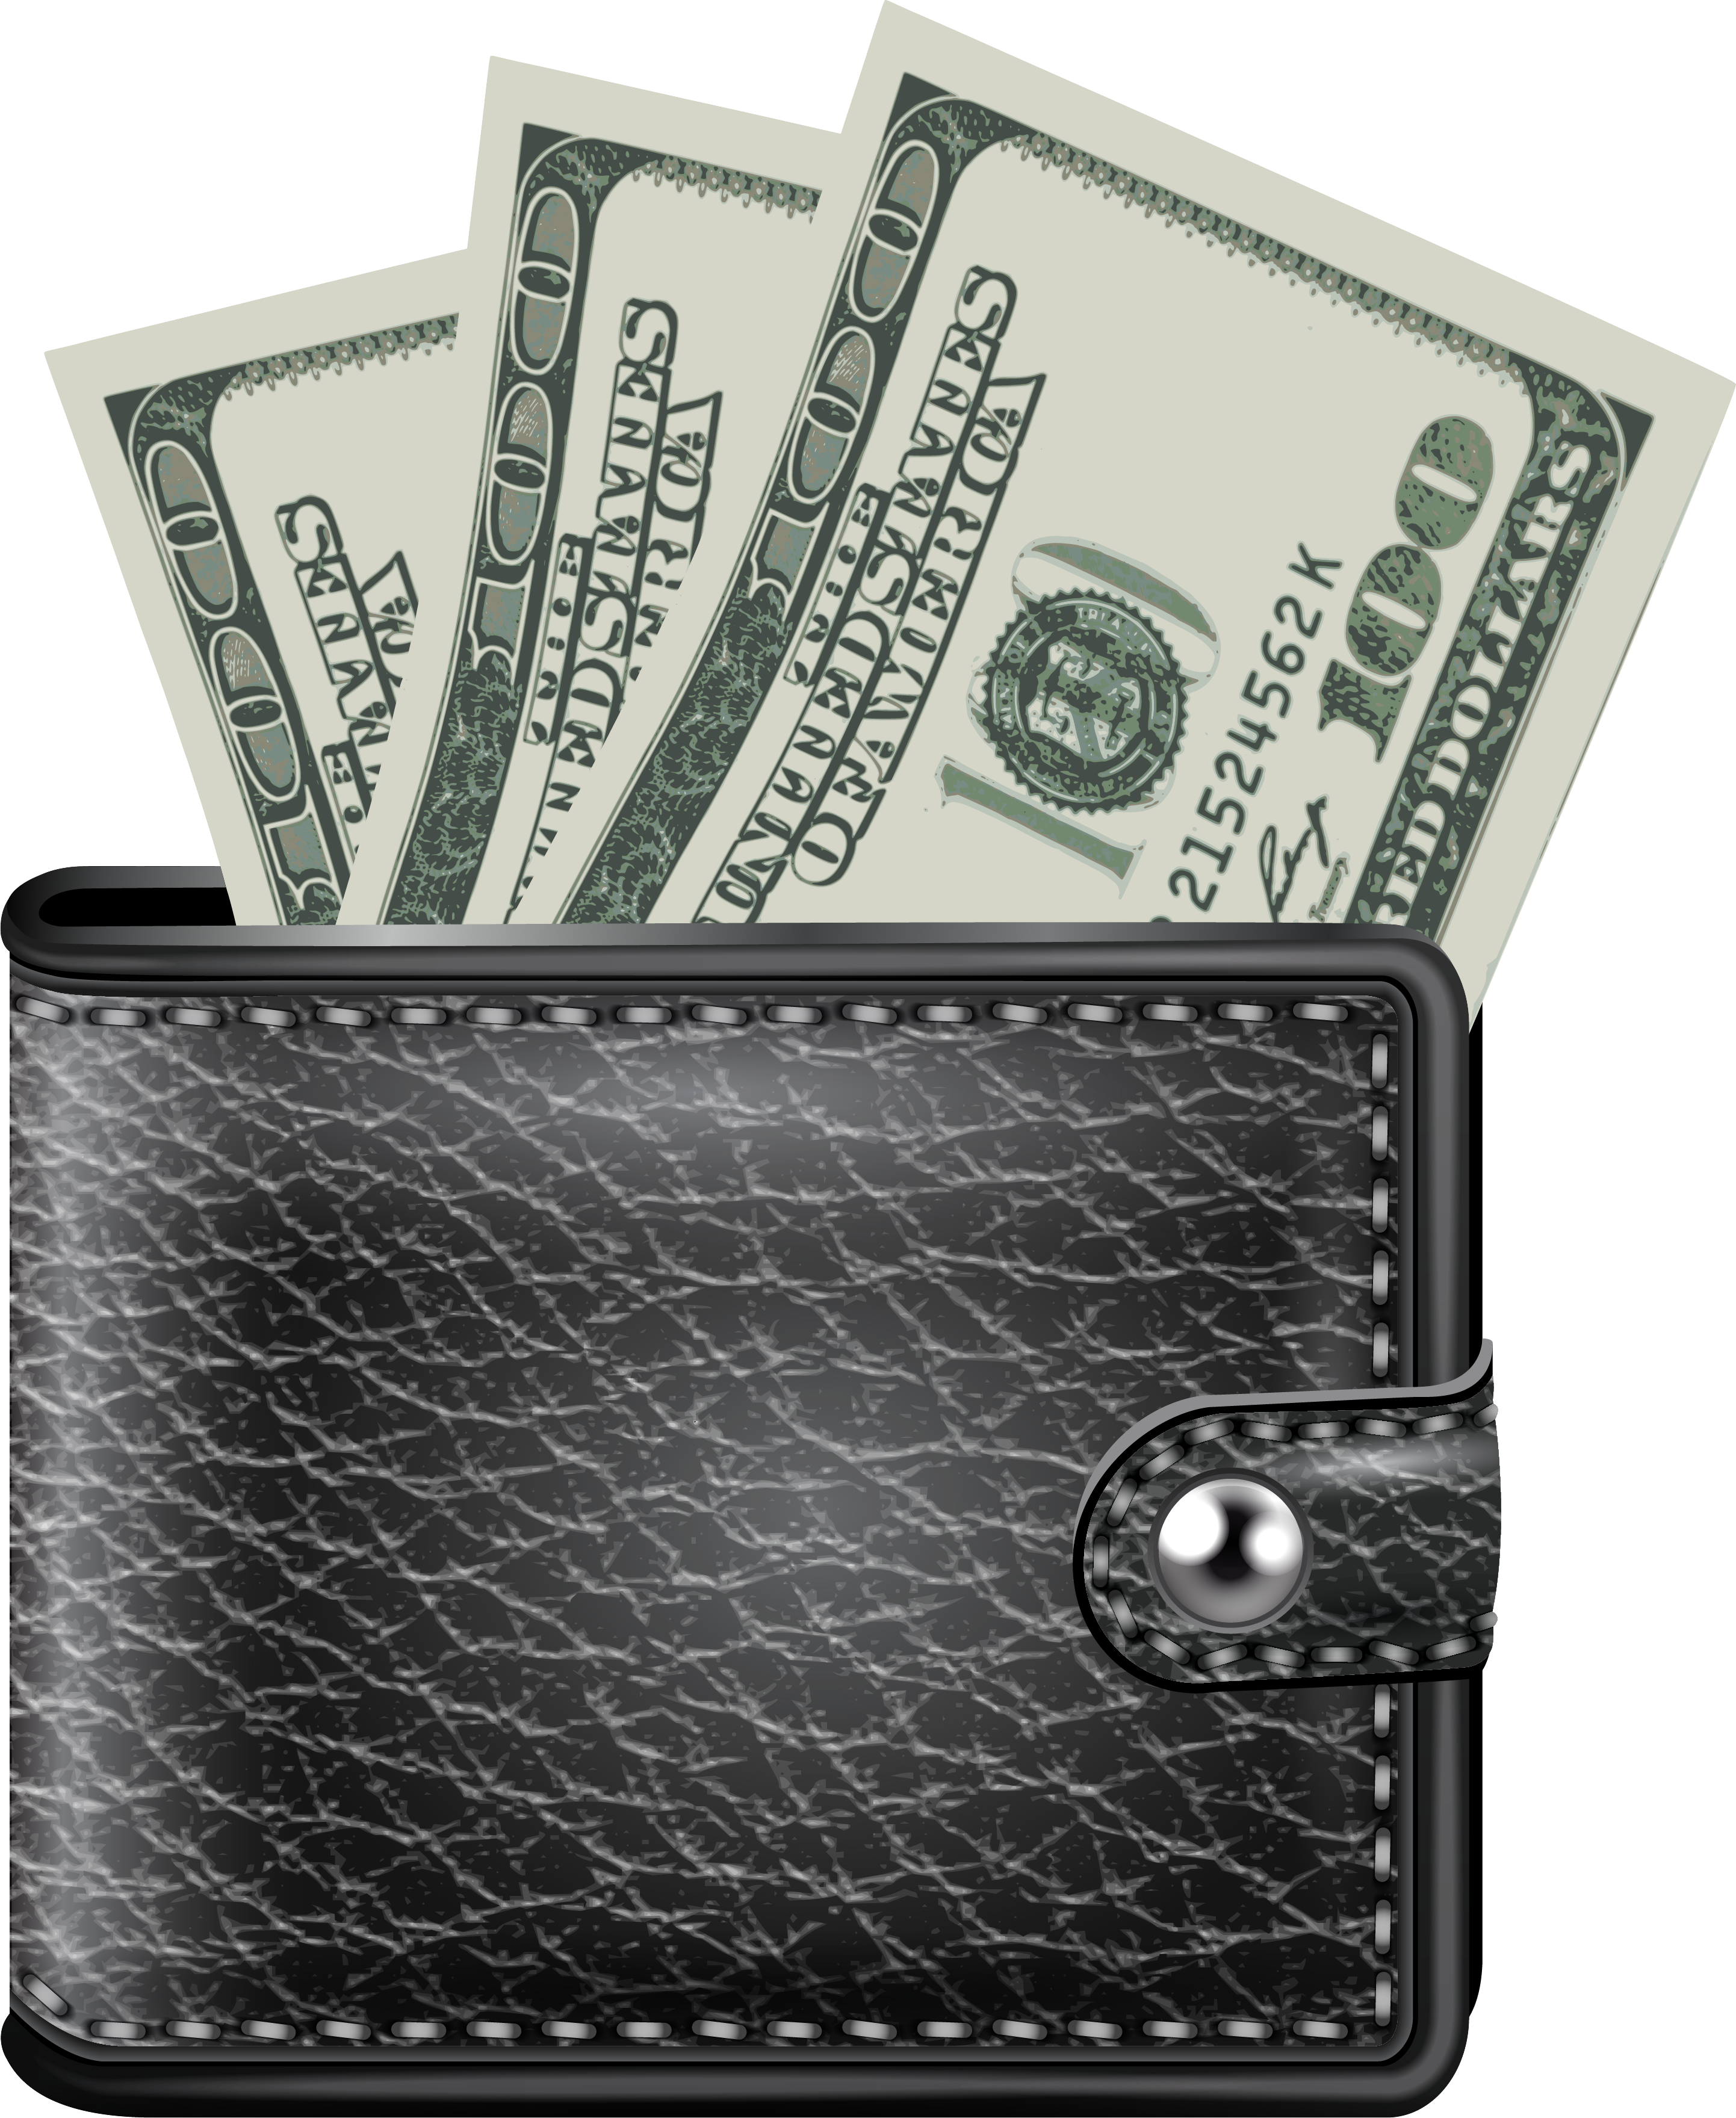 Black with money png. Wallet transparent background graphic black and white